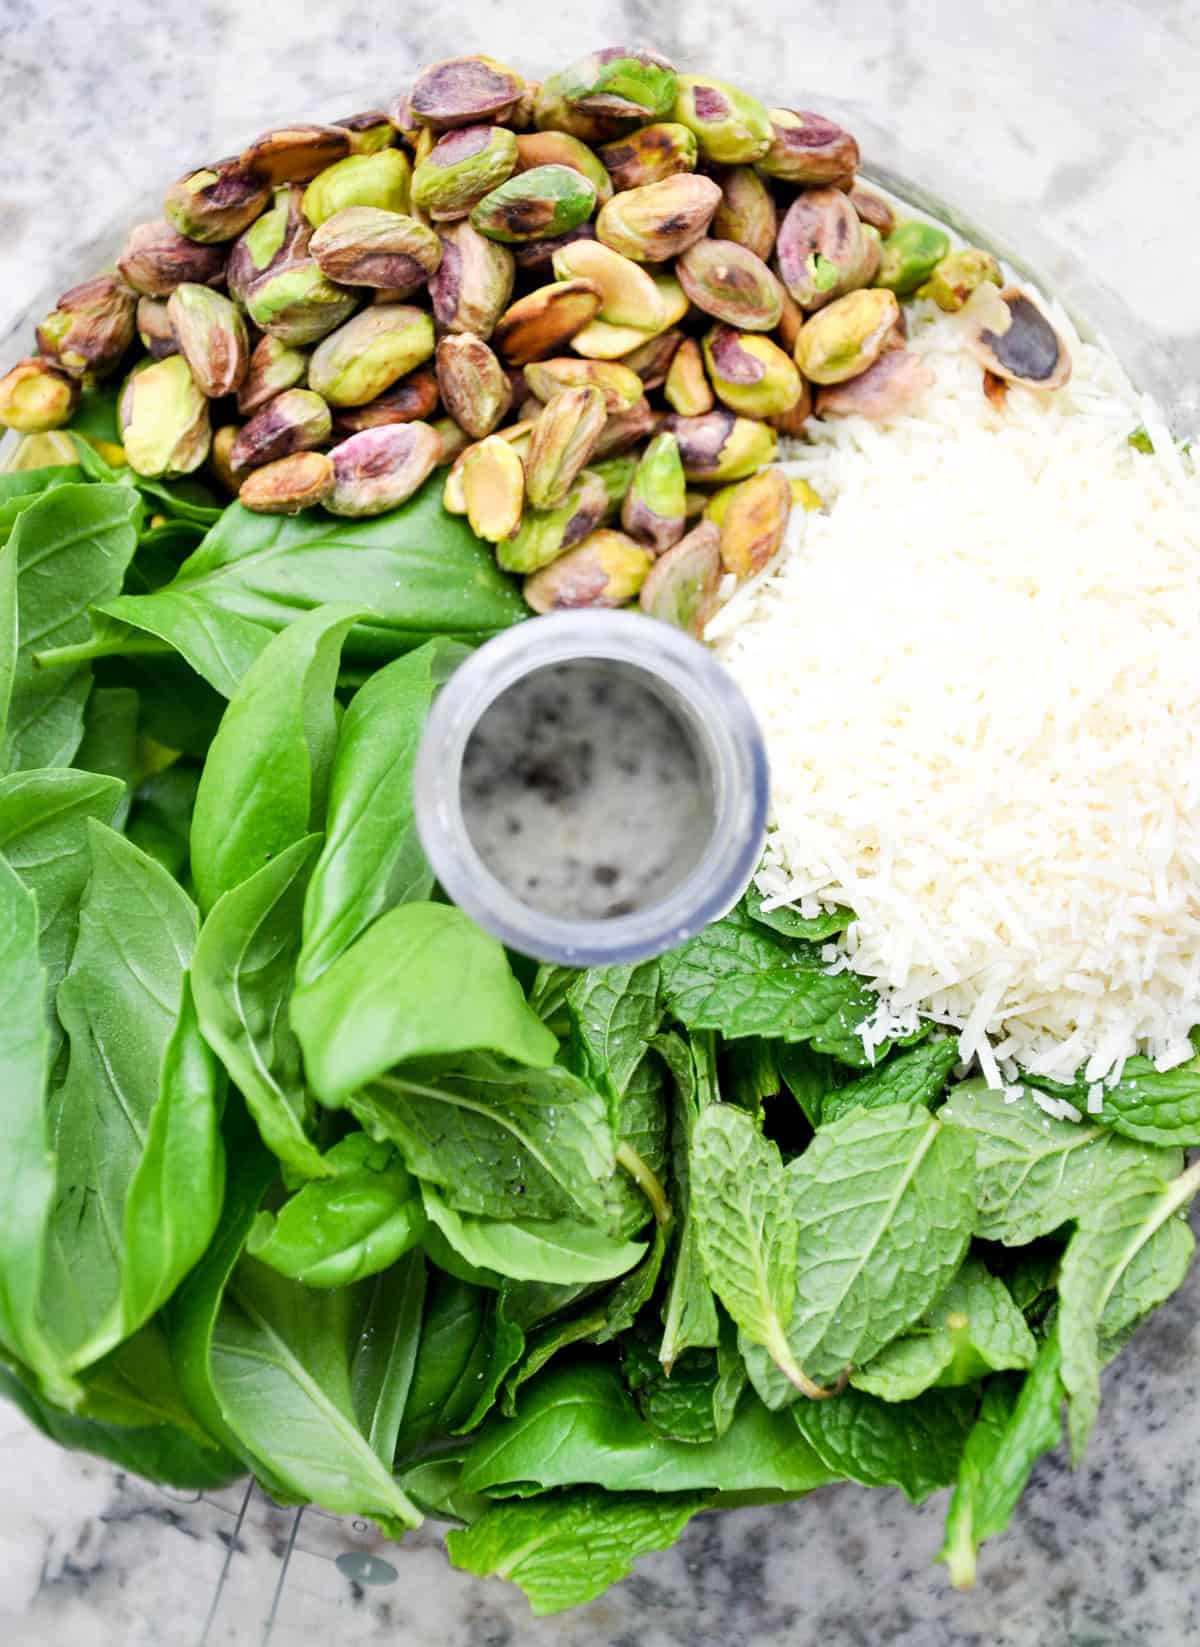 Pistachio, Mint, cheese, and basil in food processor